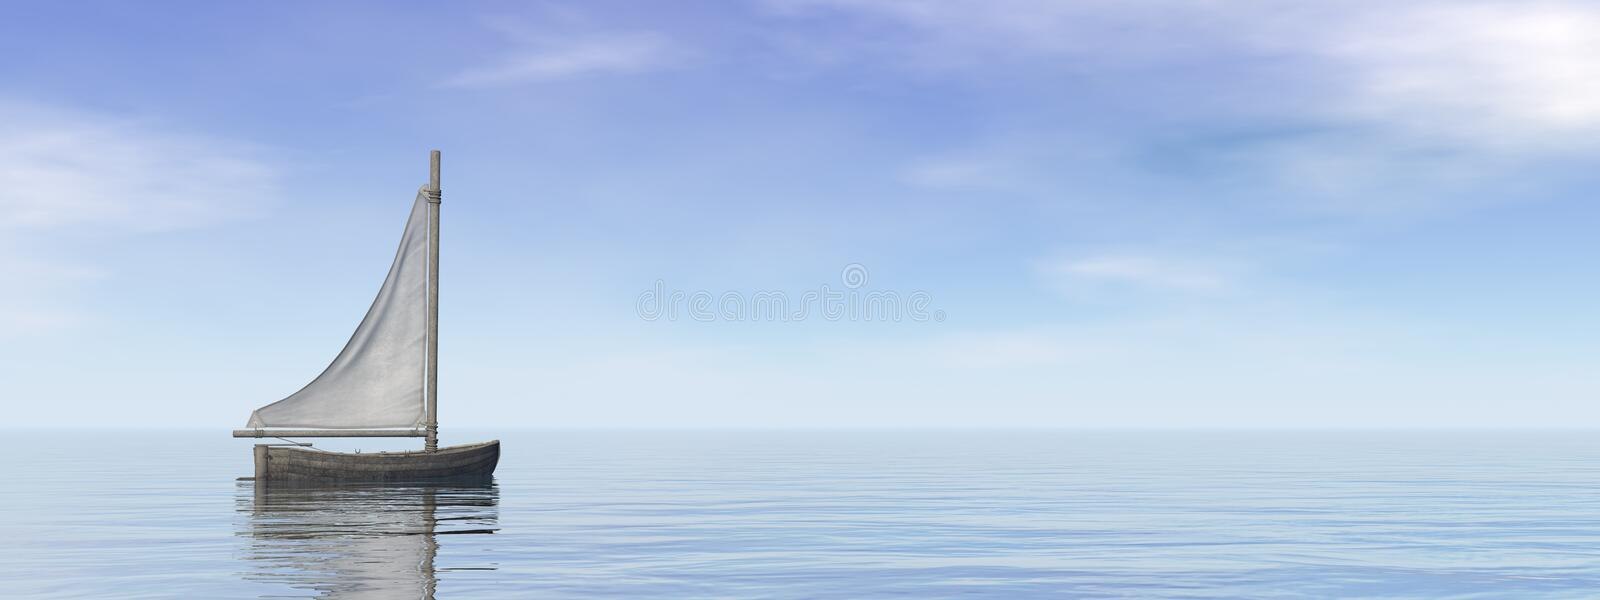 Small sailing boat on the ocean - 3D render royalty free illustration